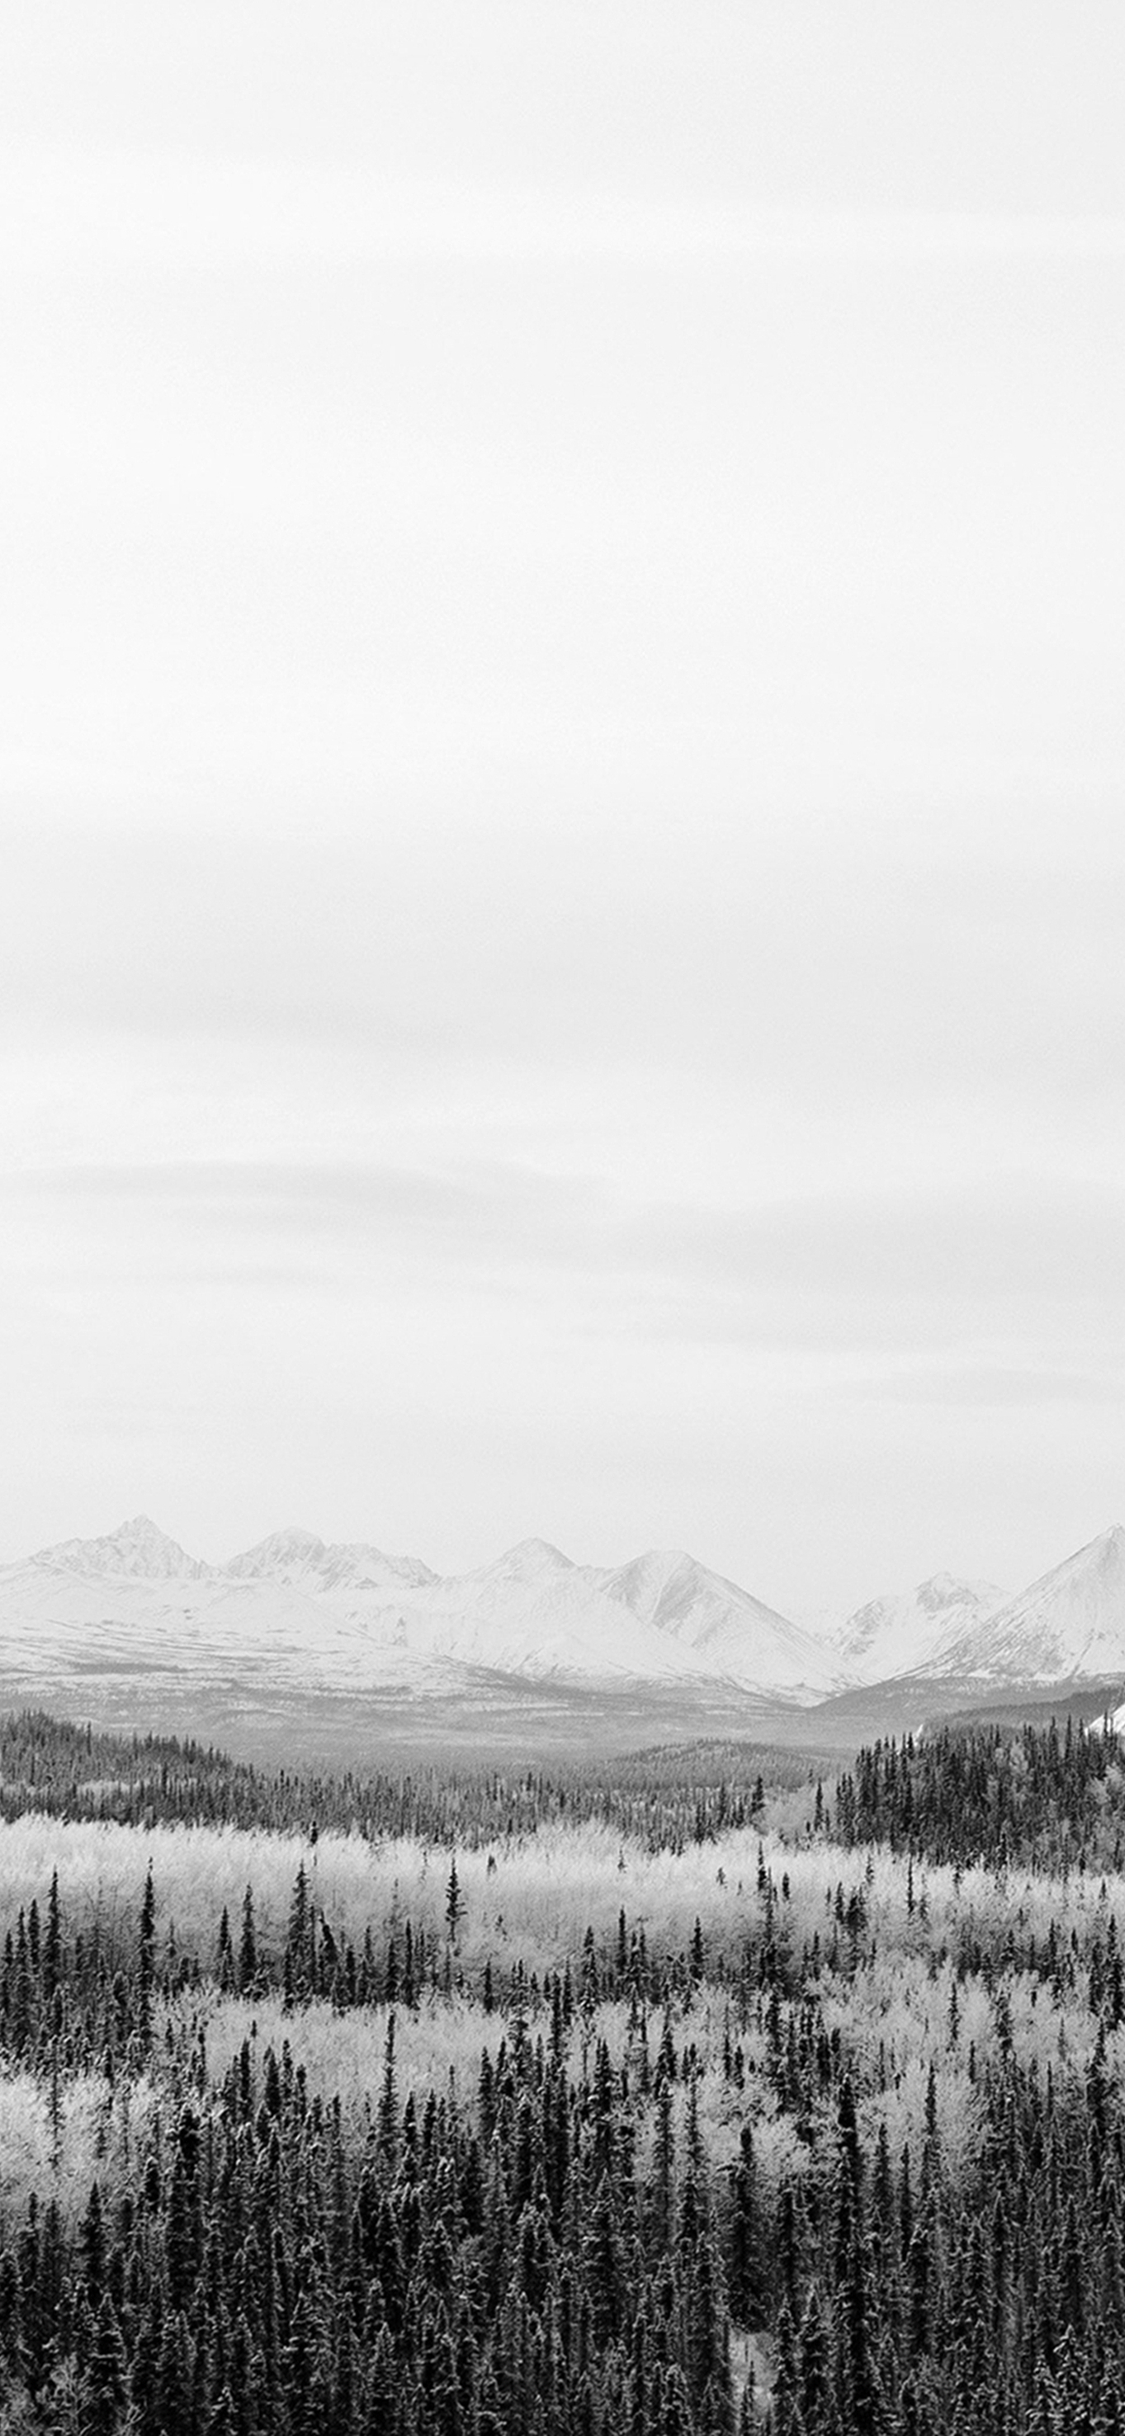 Winter Mountain Wood Nature Snow Bw Iphone X Wallpapers Free